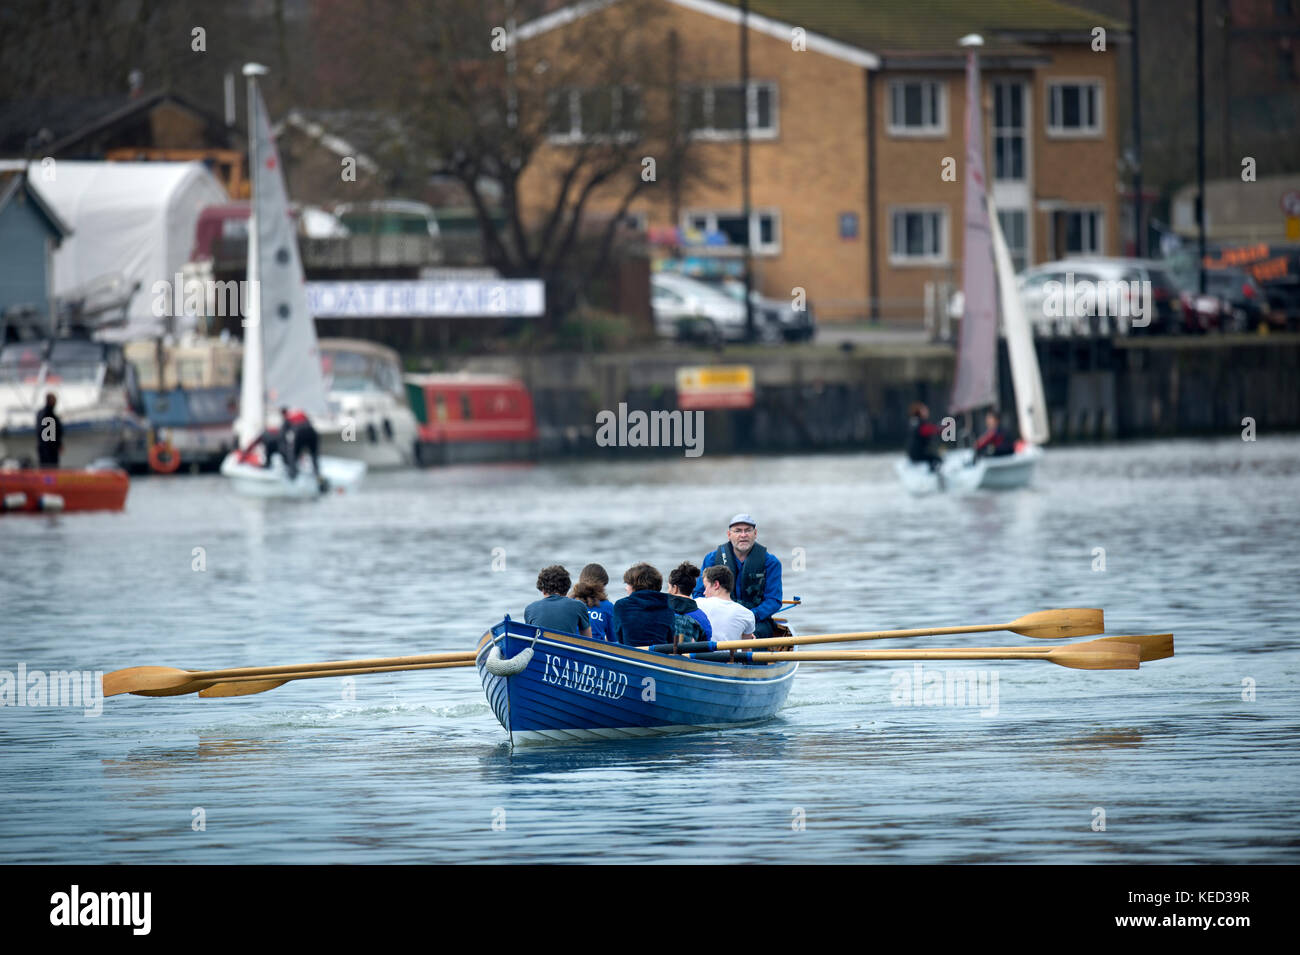 Gig rowers in the docks at Hotwells in Bristol Docks - Stock Image